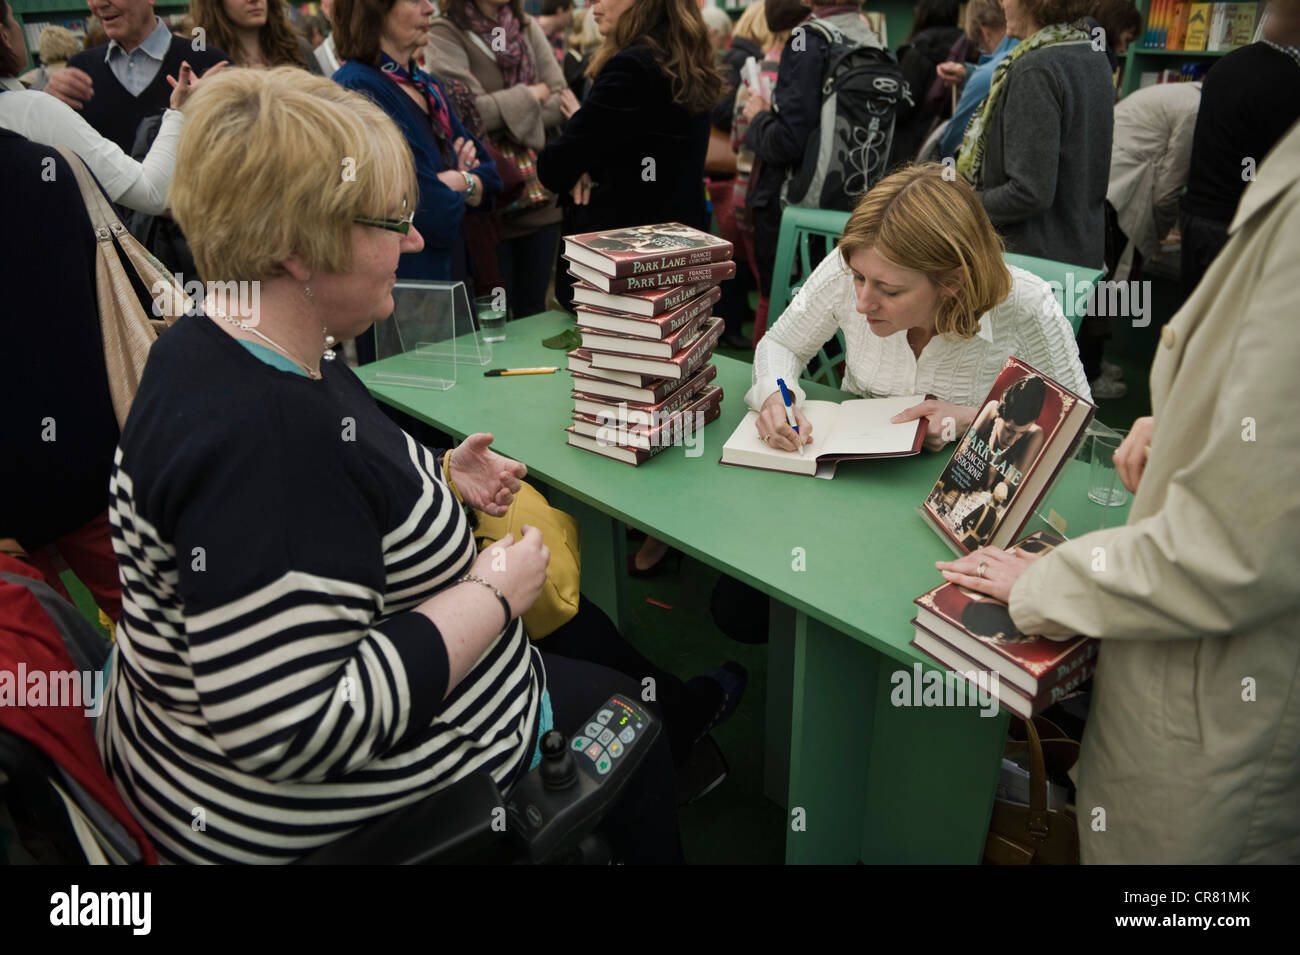 Celebrity Signings Stock Photos & Celebrity Signings Stock Images